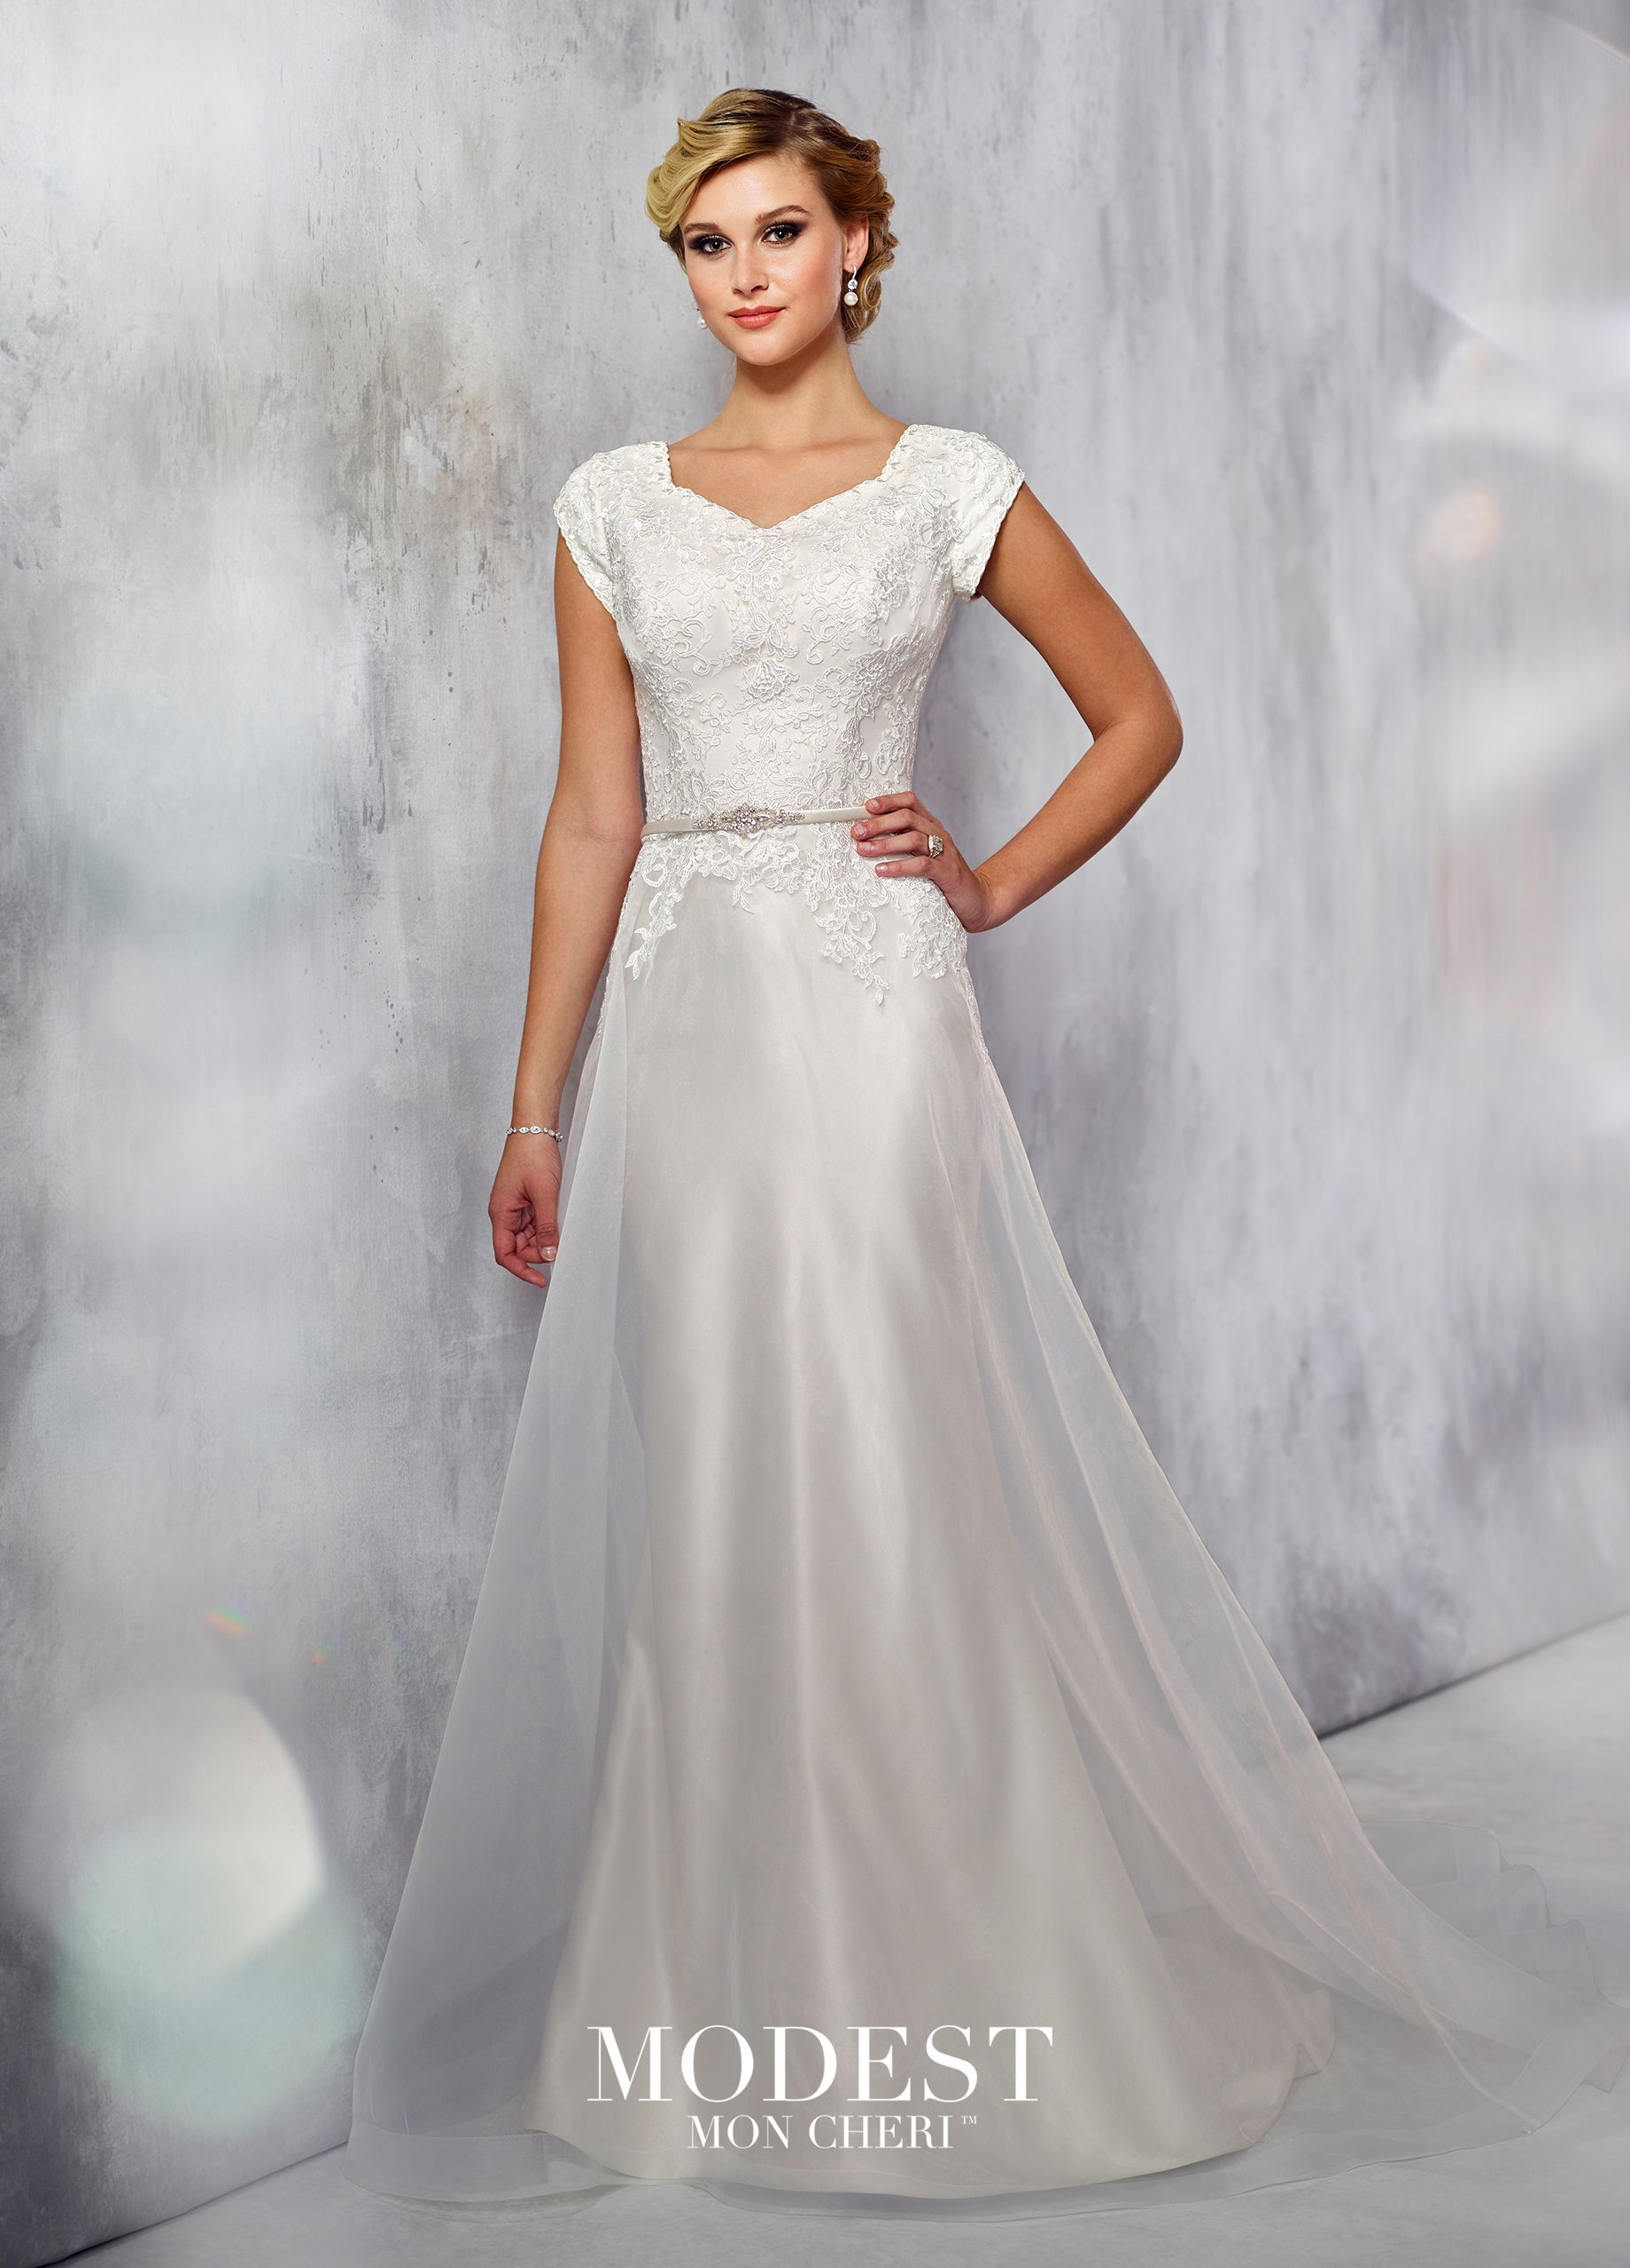 b92f40a2d1 mon cheri bridals wedding dress TR21713 - Tulle and organza cage A-line  dress with lace cap sleeves